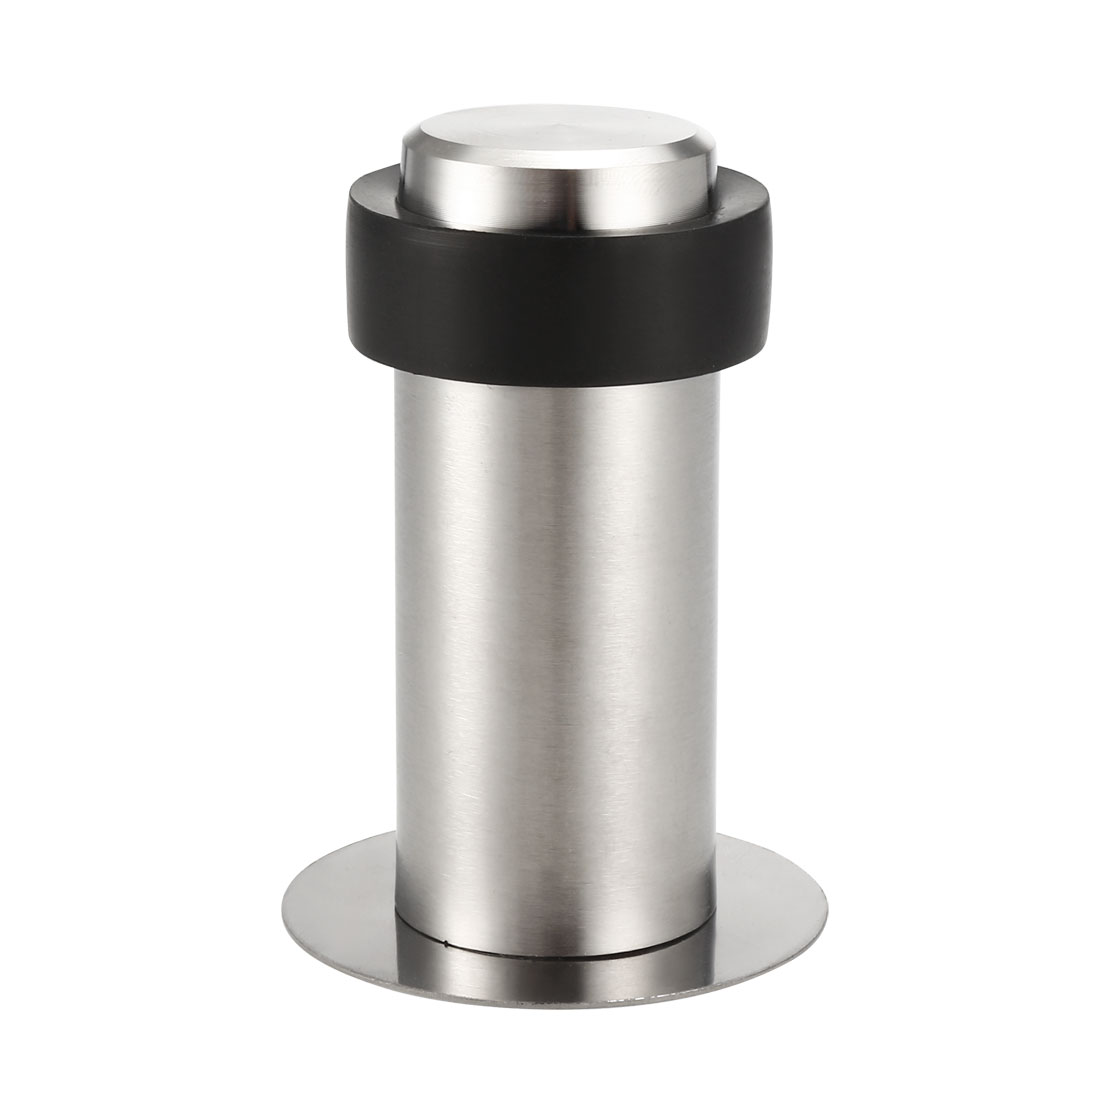 Stainless Steel Door Stopper Cylindrical Floor Mount Adhesive Sheets 80mm Height